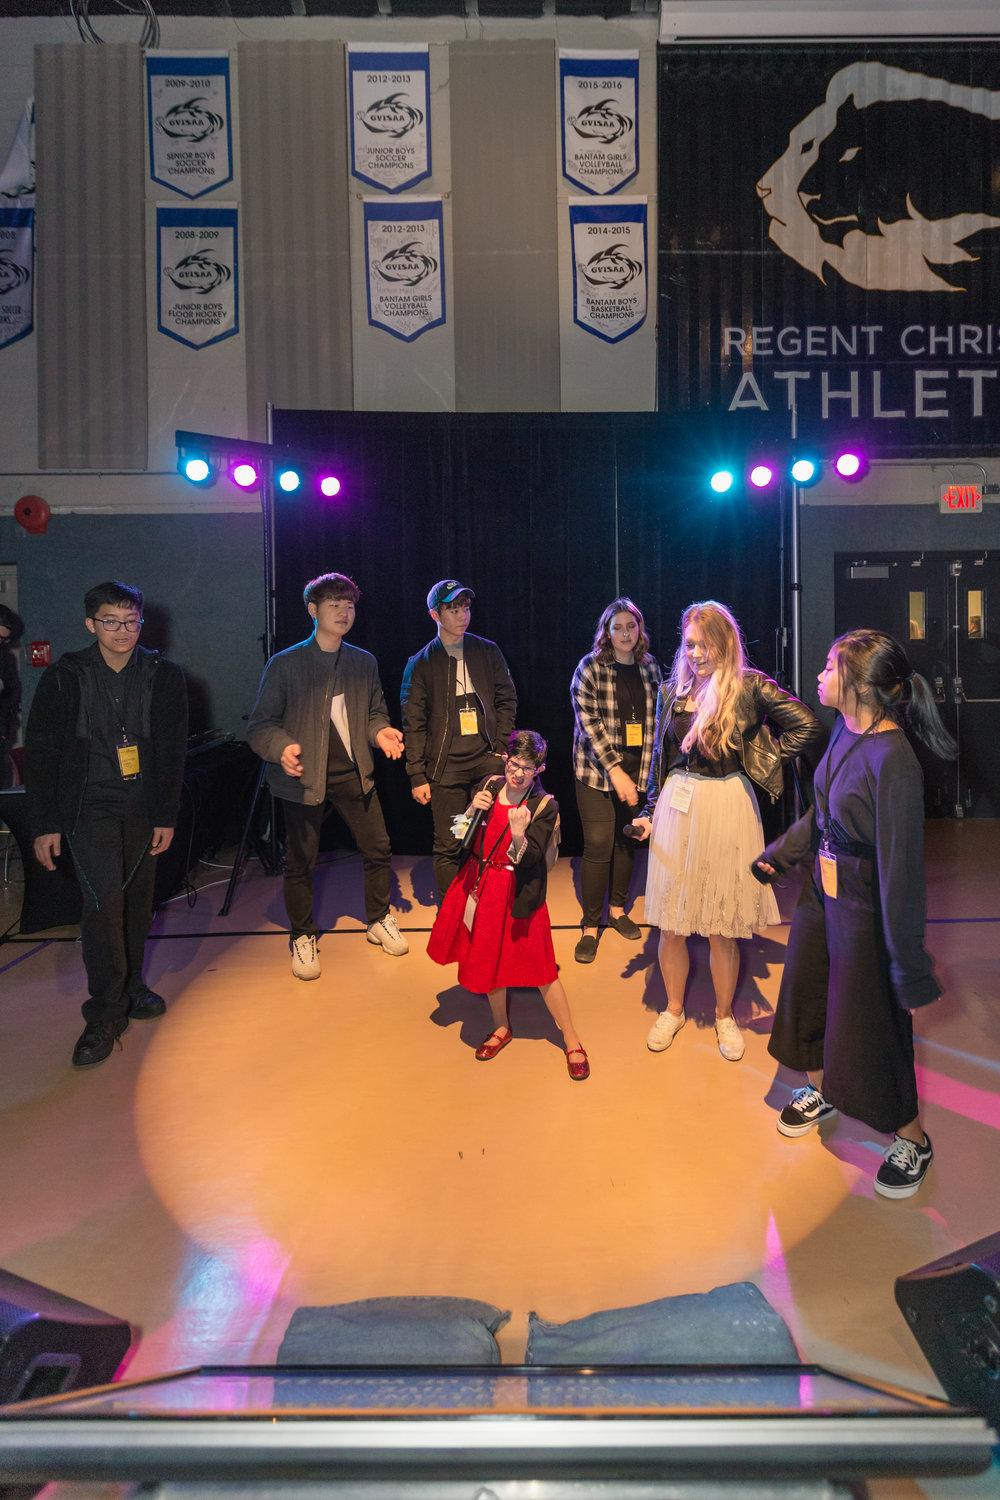 20180209_NightToShine_HorizonChurch-0651.jpg